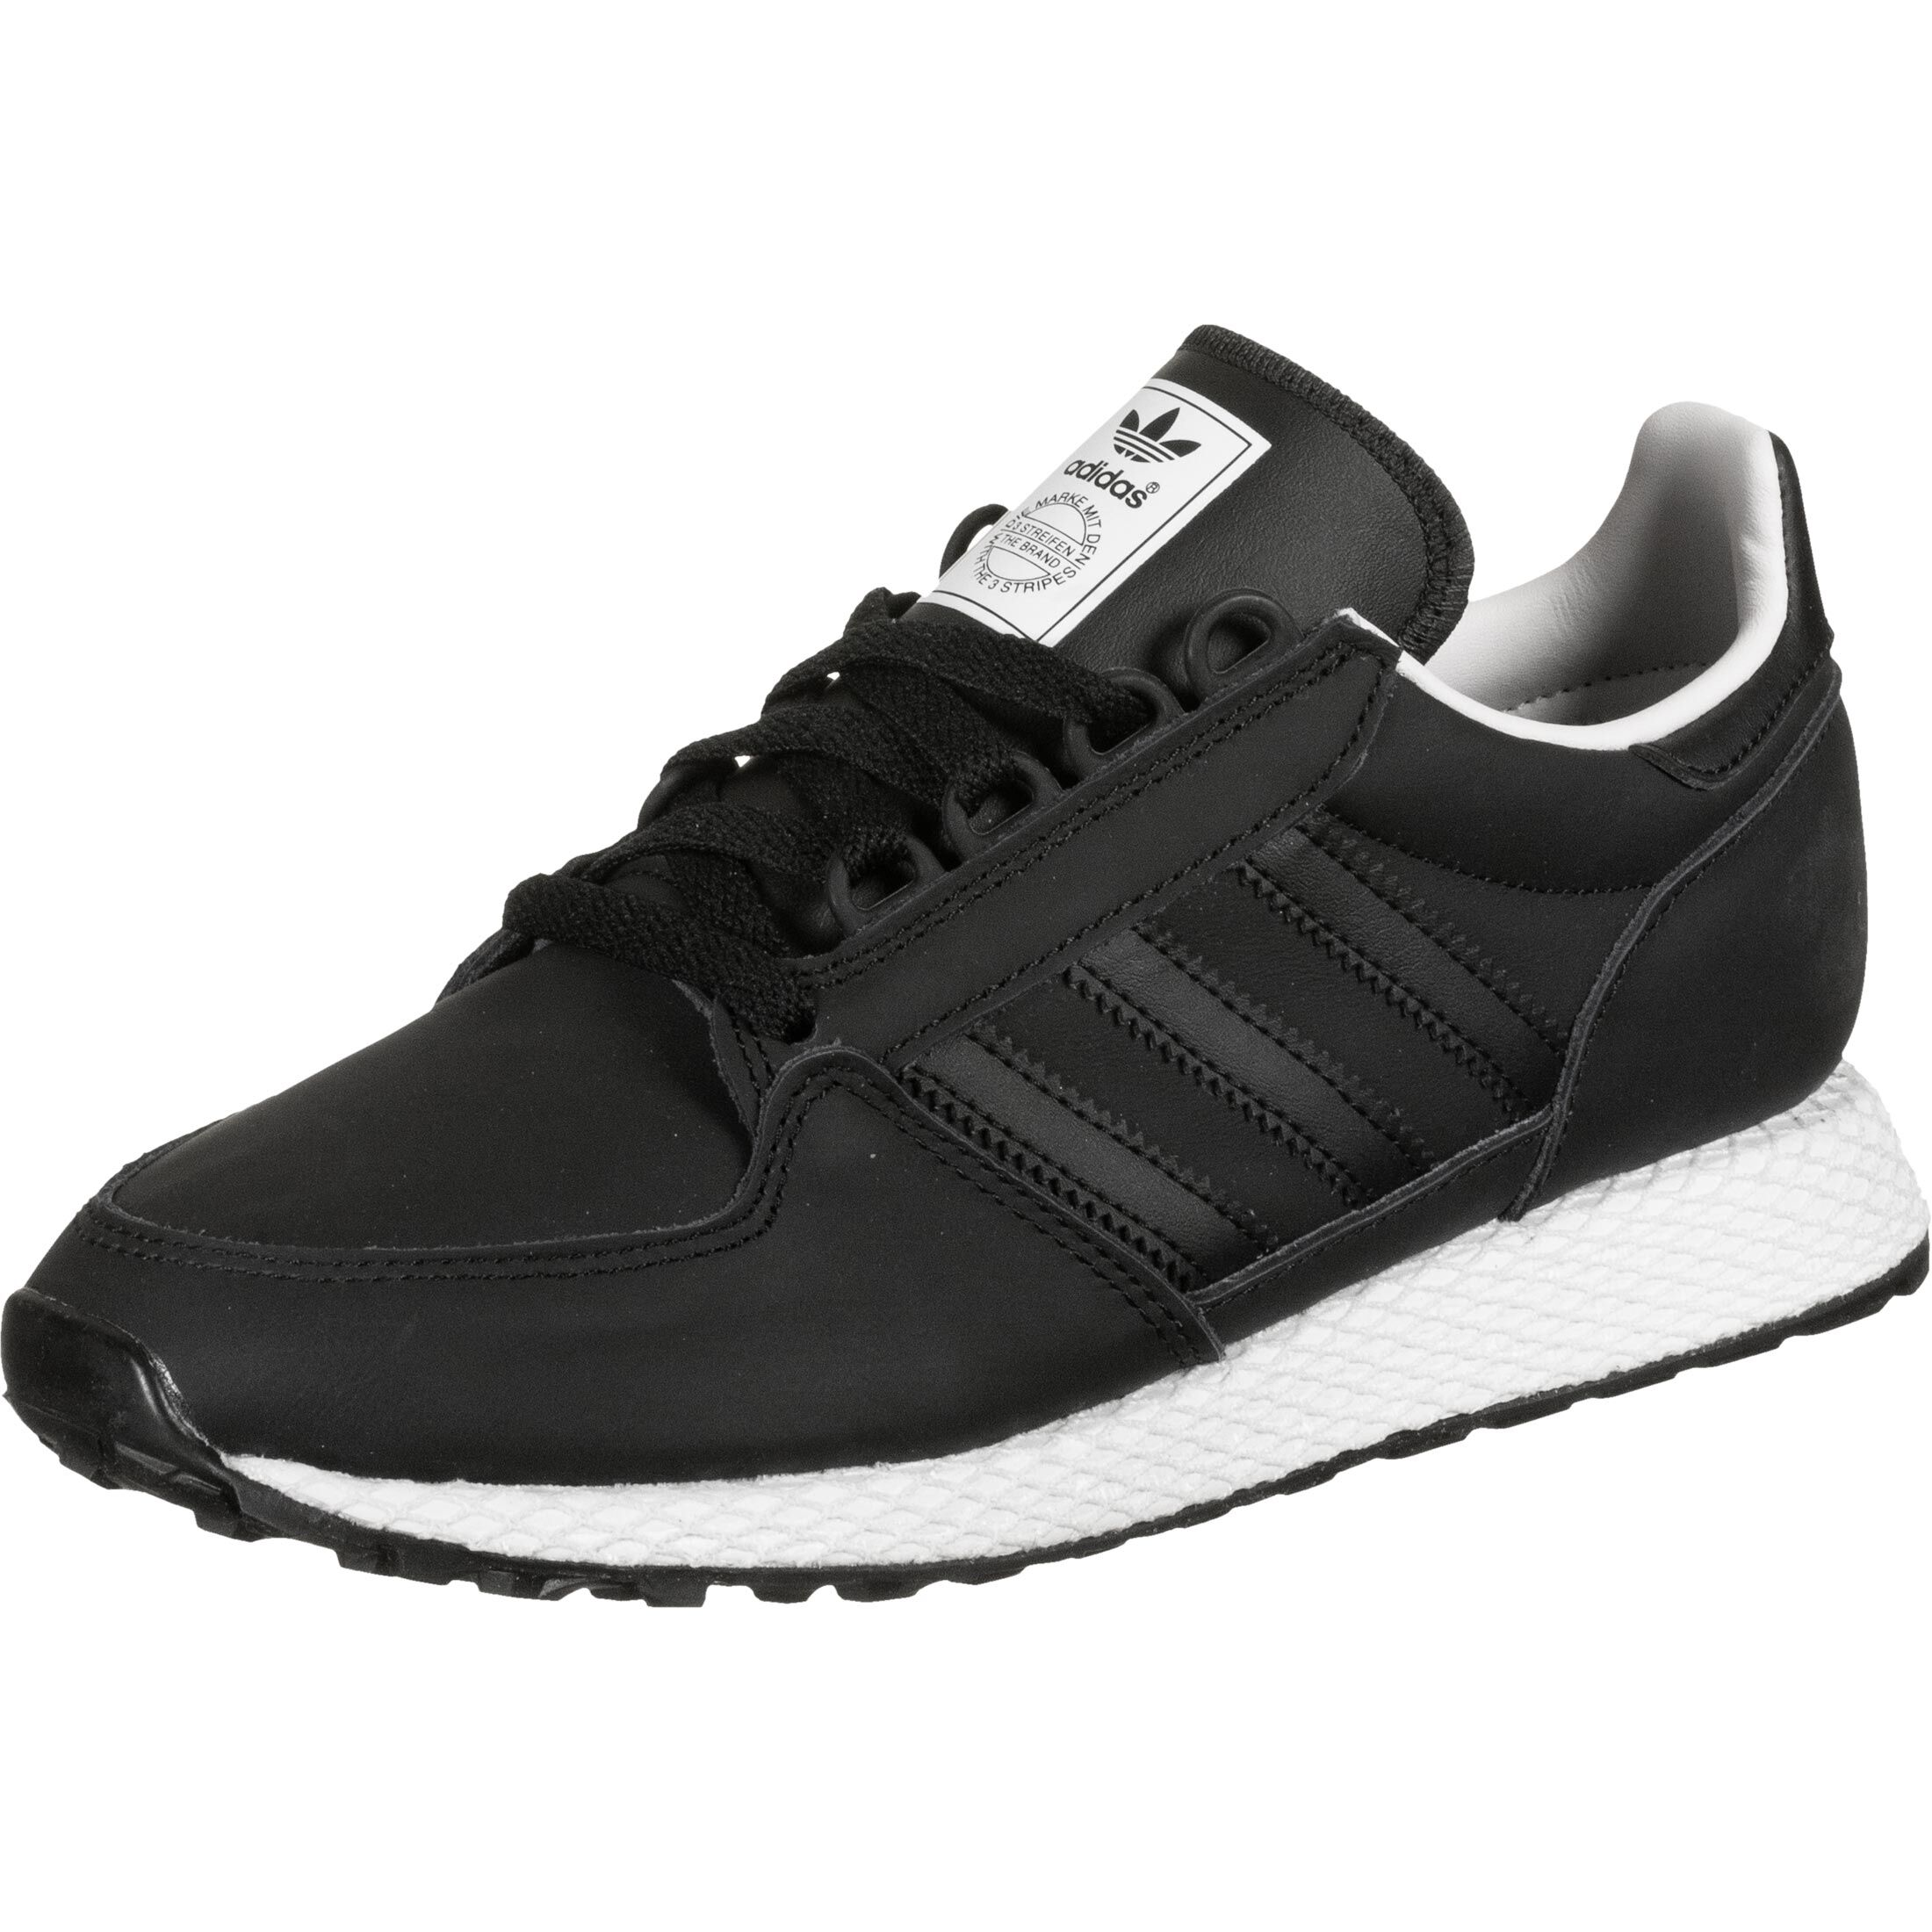 adidas Forest Grove - Sneakers Low at Stylefile